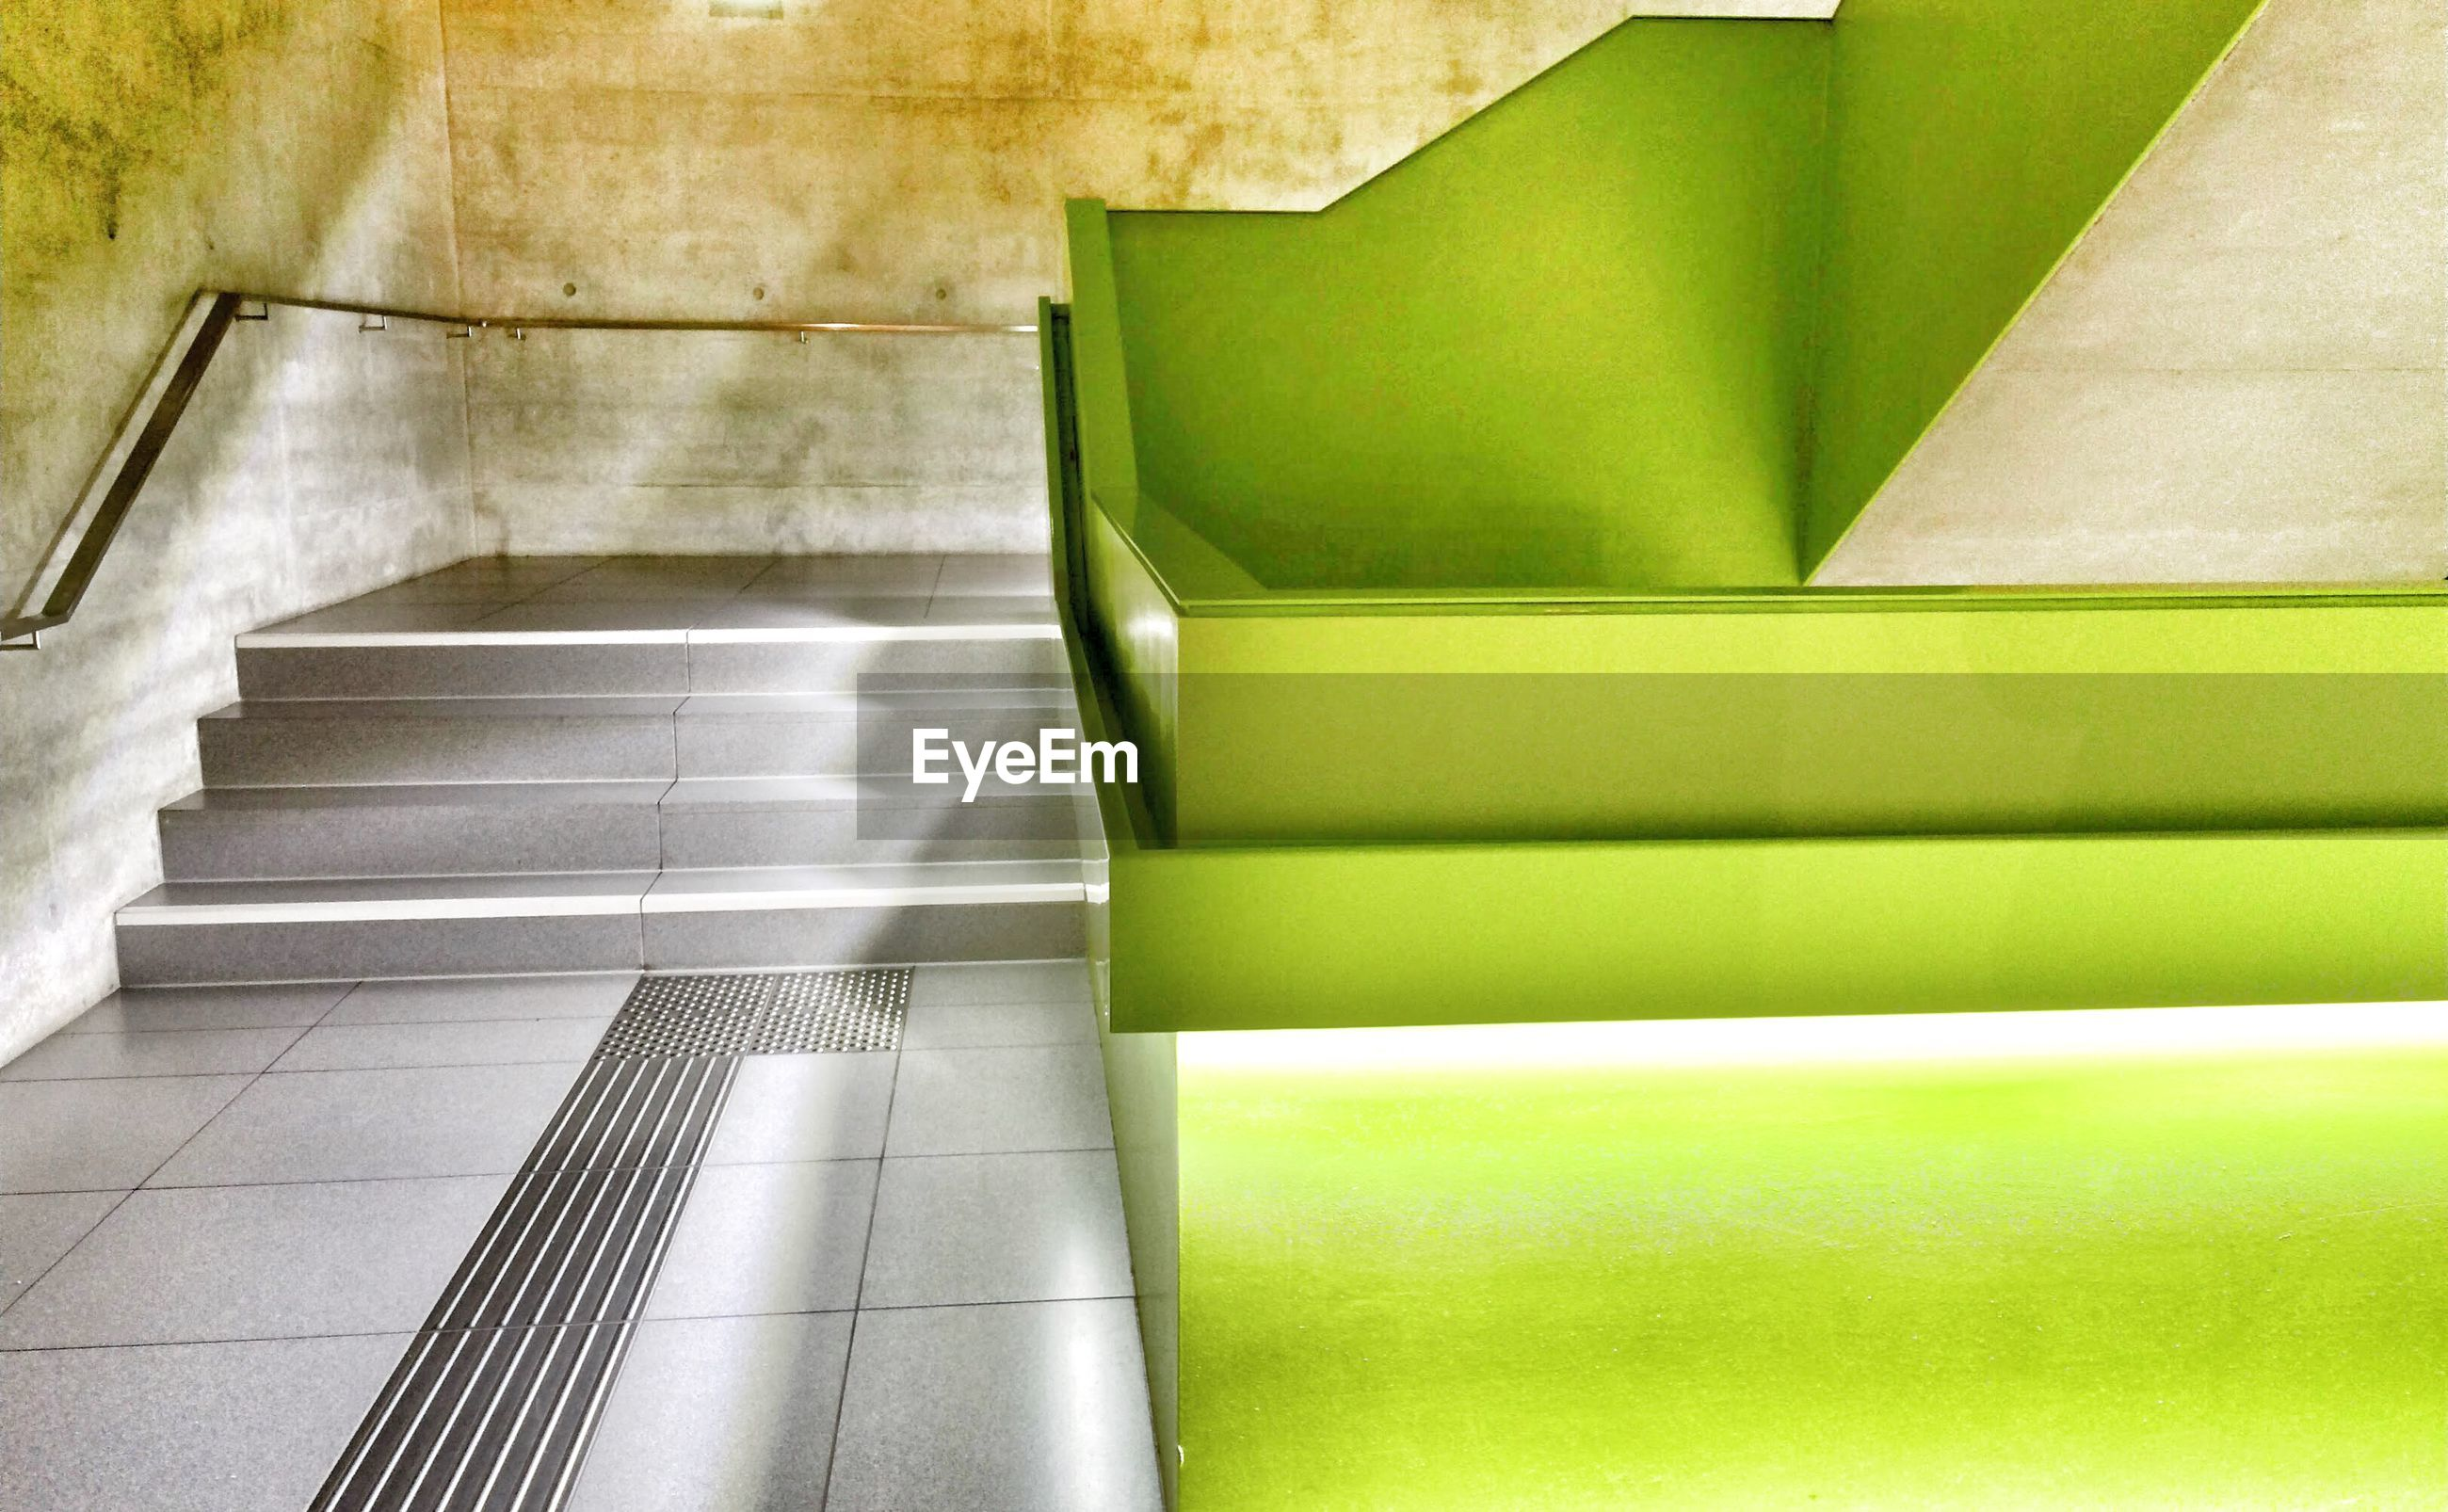 indoors, green color, absence, empty, built structure, architecture, wall - building feature, no people, steps, in a row, wall, steps and staircases, staircase, seat, pattern, sunlight, high angle view, day, modern, chair